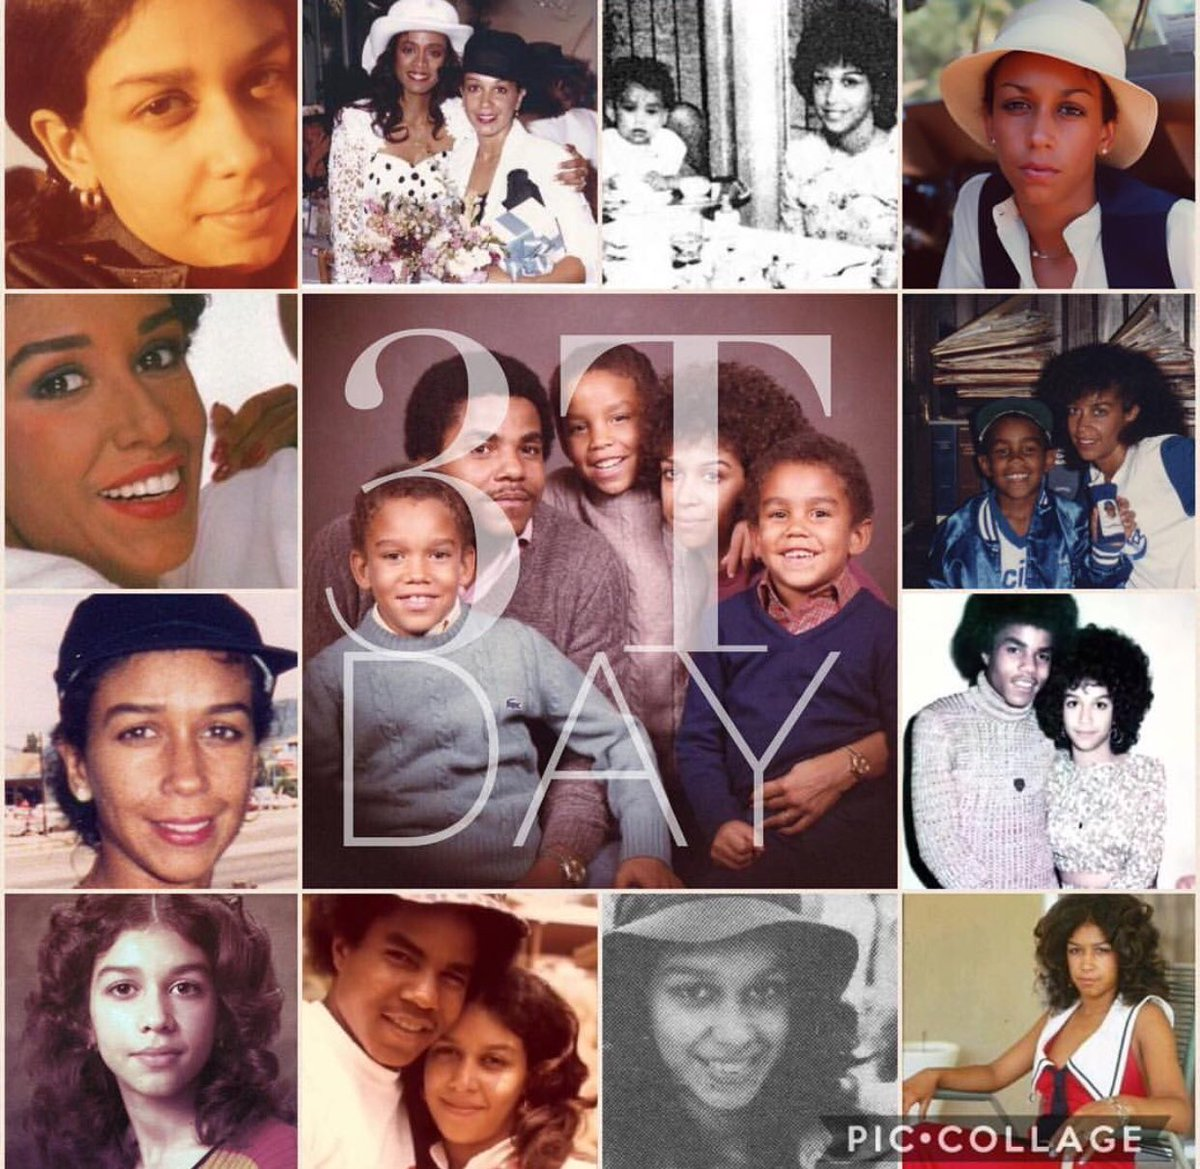 Every @3tworld fan holds a special place in the heart for #deedeejackson  1 April is her birthday & known as #3TDay. The day 4 the mother @tjjackson9 @tarylljackson @tajjackson 2 honor the footprints and legacy she left  which is continued through her sons and @DDJFoundation pic.twitter.com/MpjrTquN1I